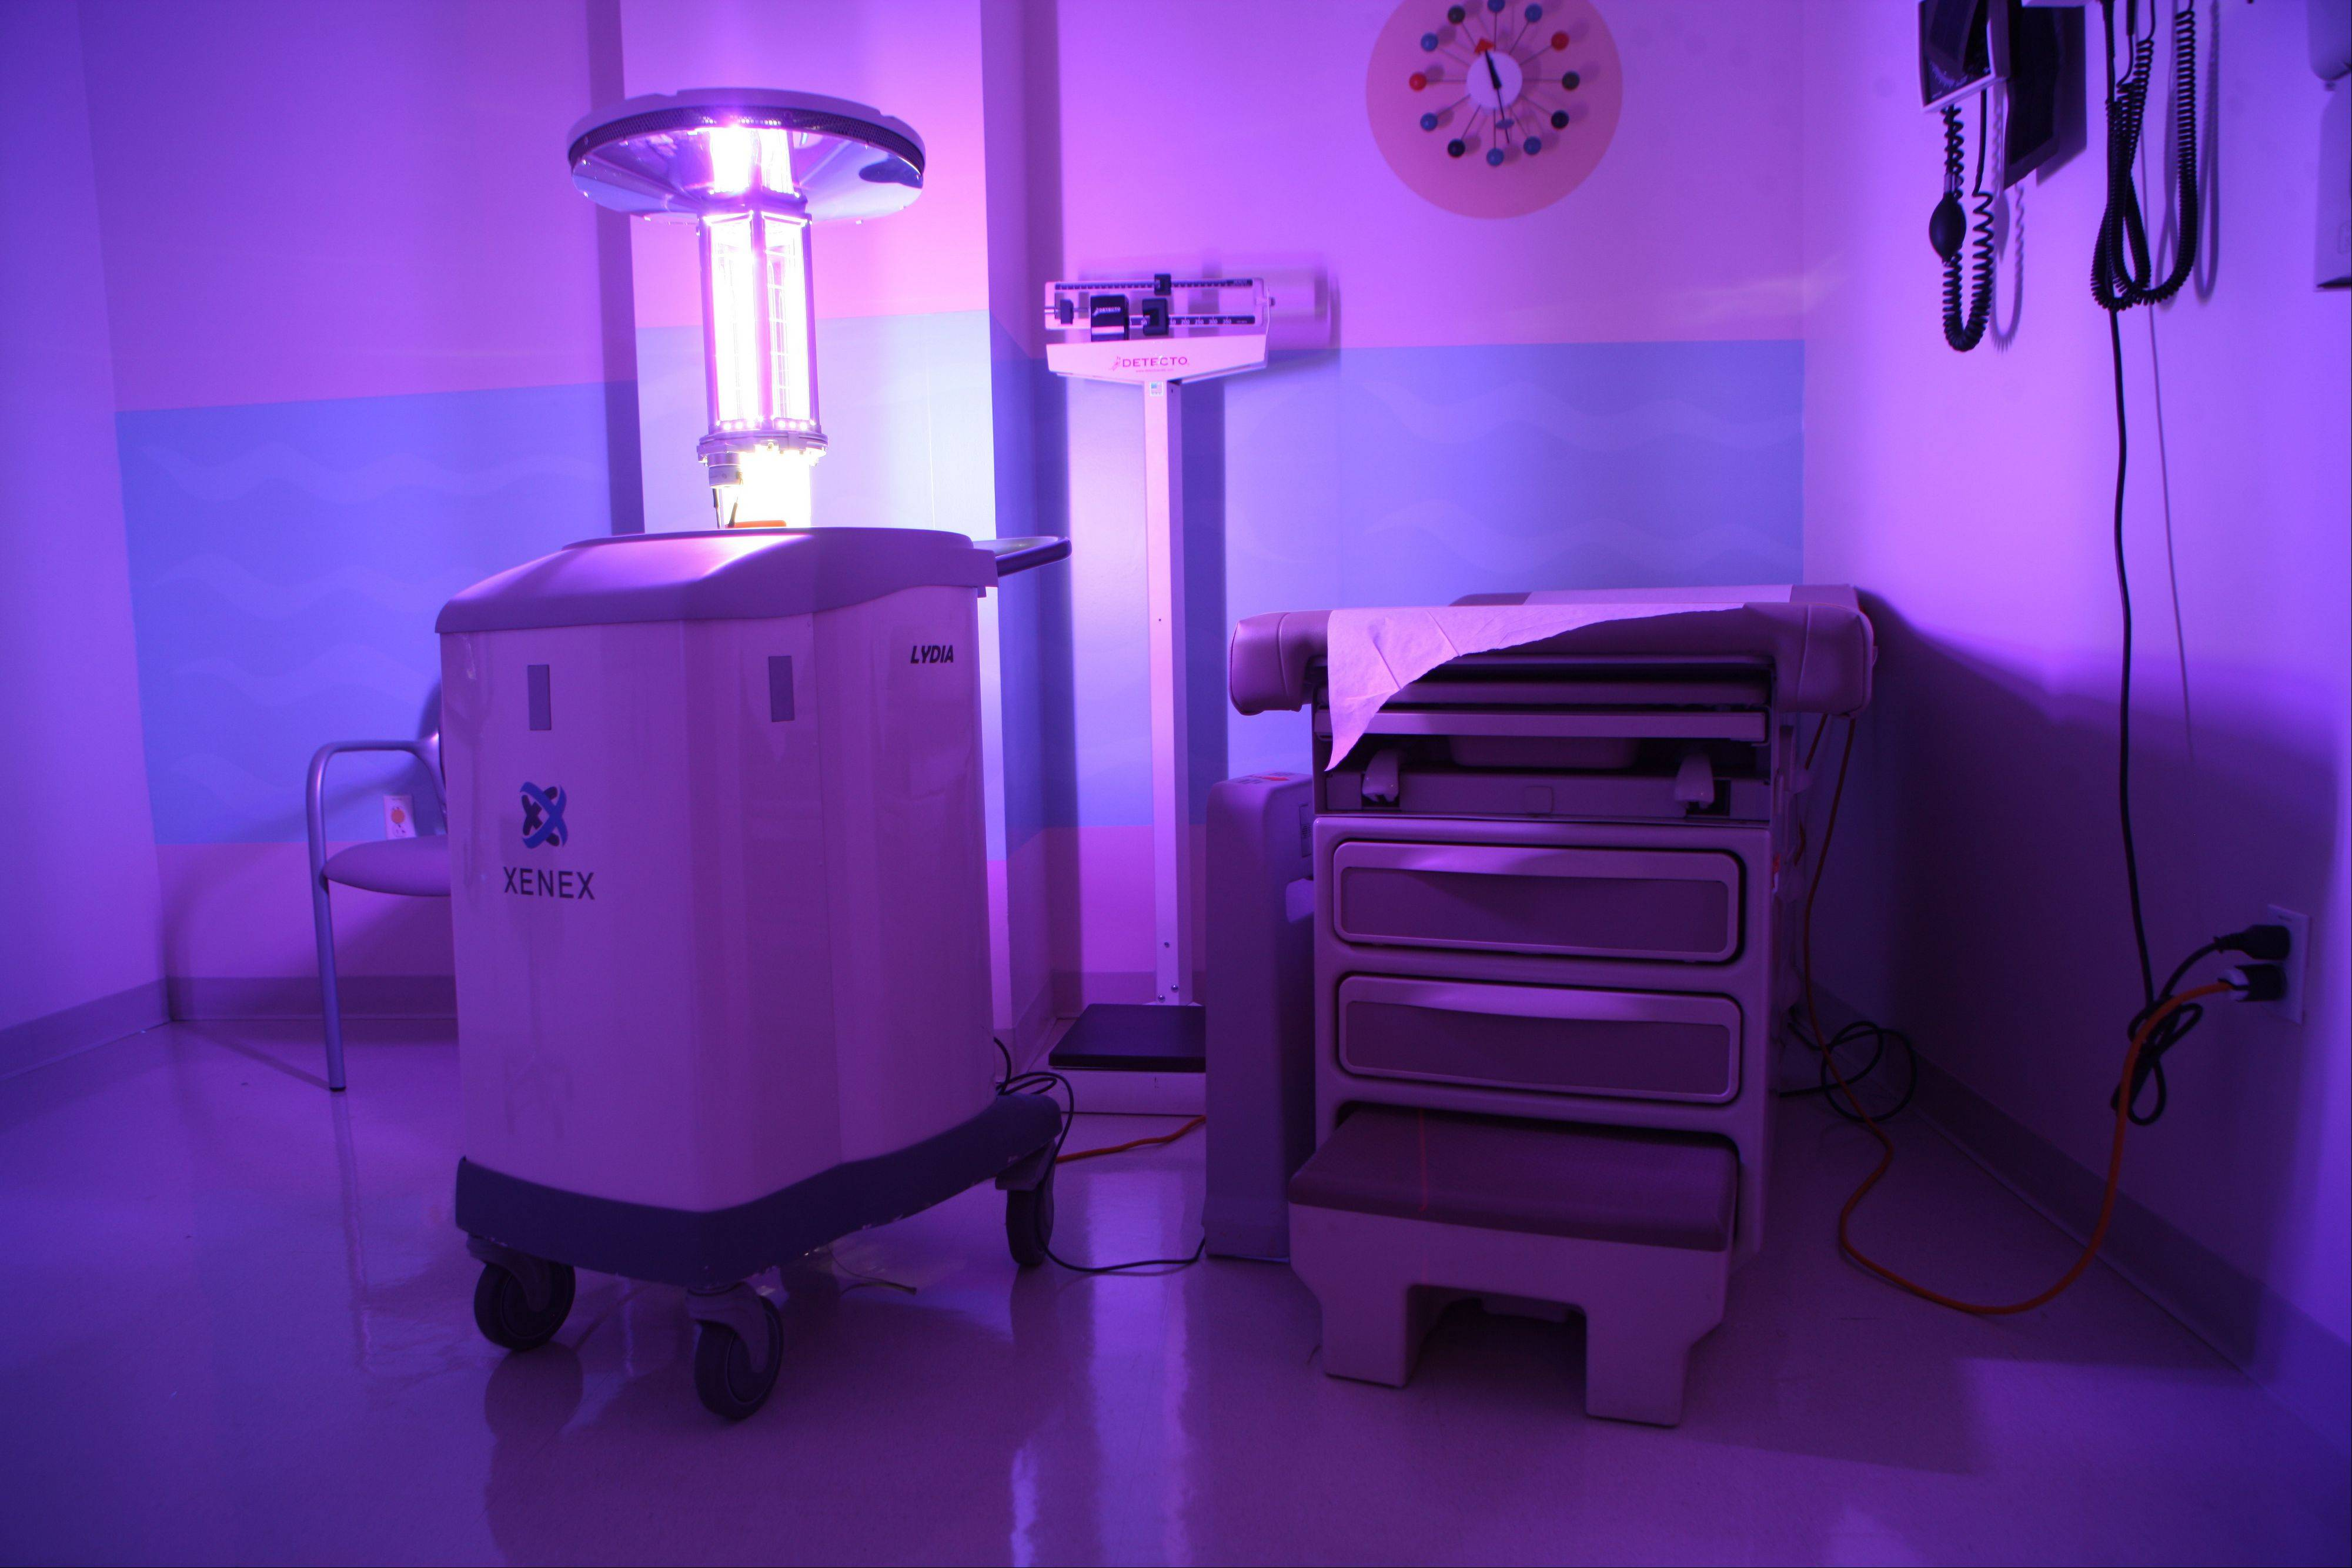 This Xenex robot is cleaning a patient room in Stamford Hospital in Stamford, Conn.